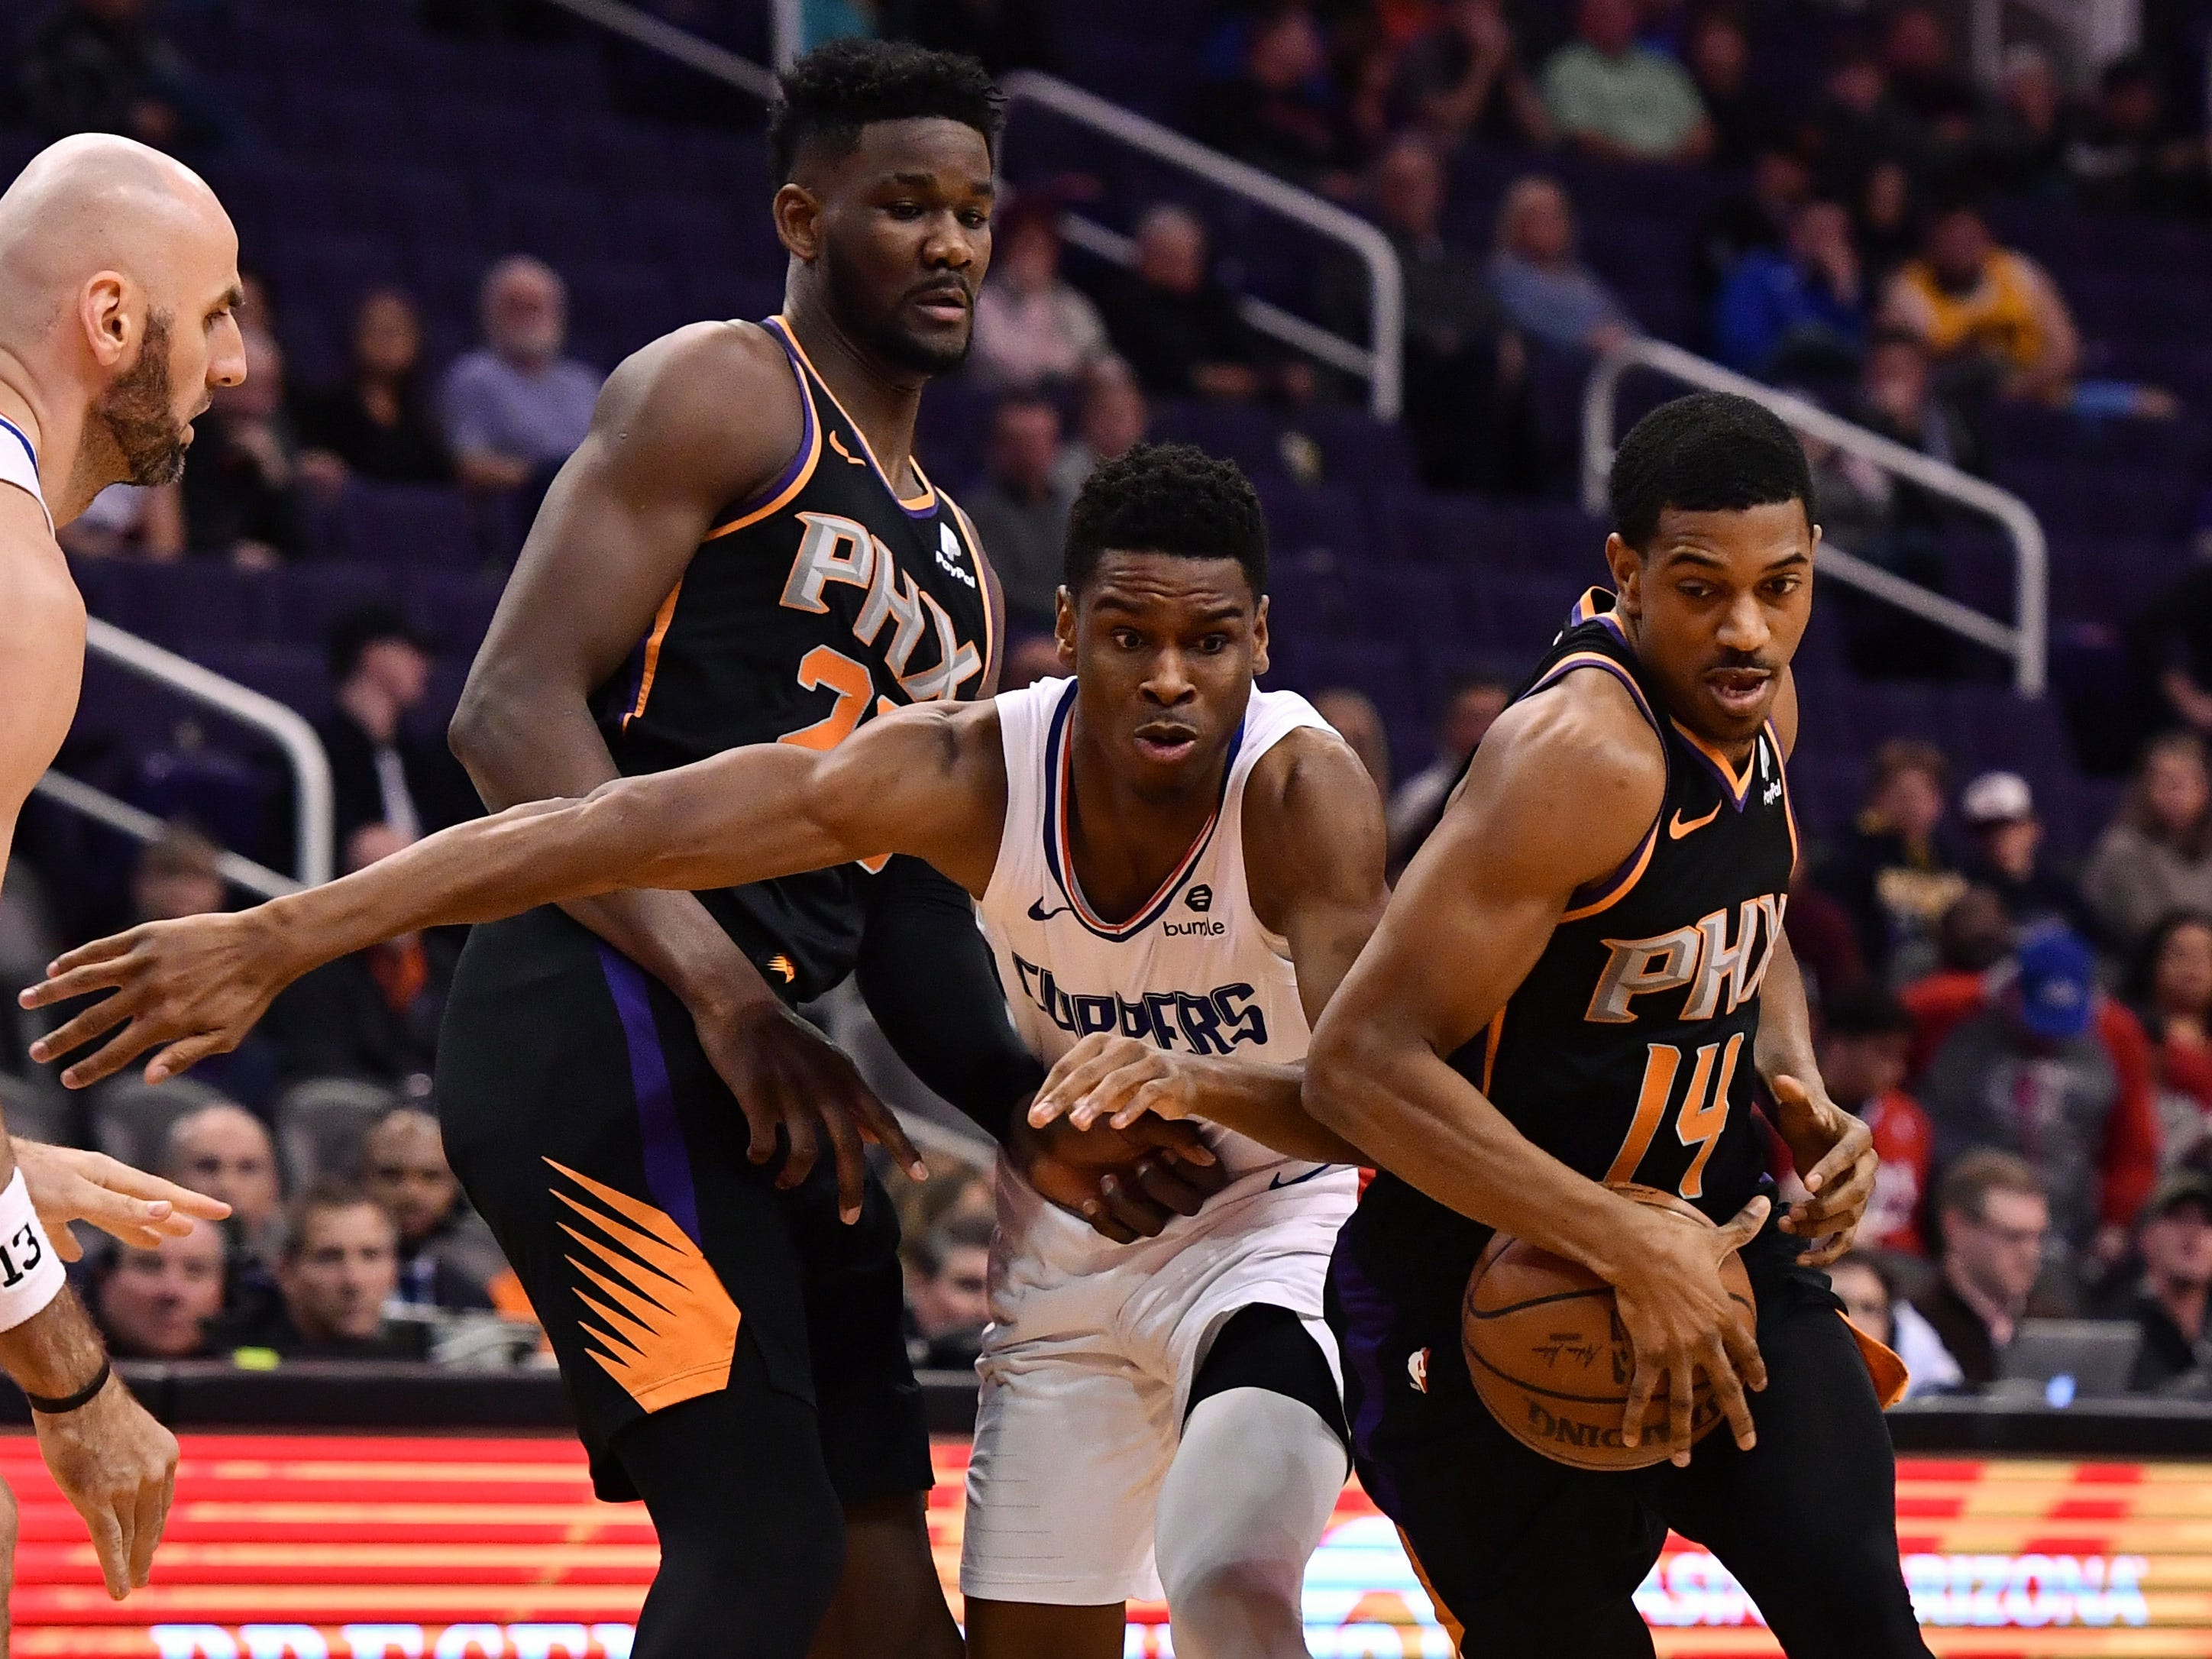 Jan 4, 2019; Phoenix, AZ, USA; Phoenix Suns guard De'Anthony Melton (14) handles the ball against LA Clippers guard Shai Gilgeous-Alexander (2) in the first half at Talking Stick Resort Arena. Mandatory Credit: Jennifer Stewart-USA TODAY Sports